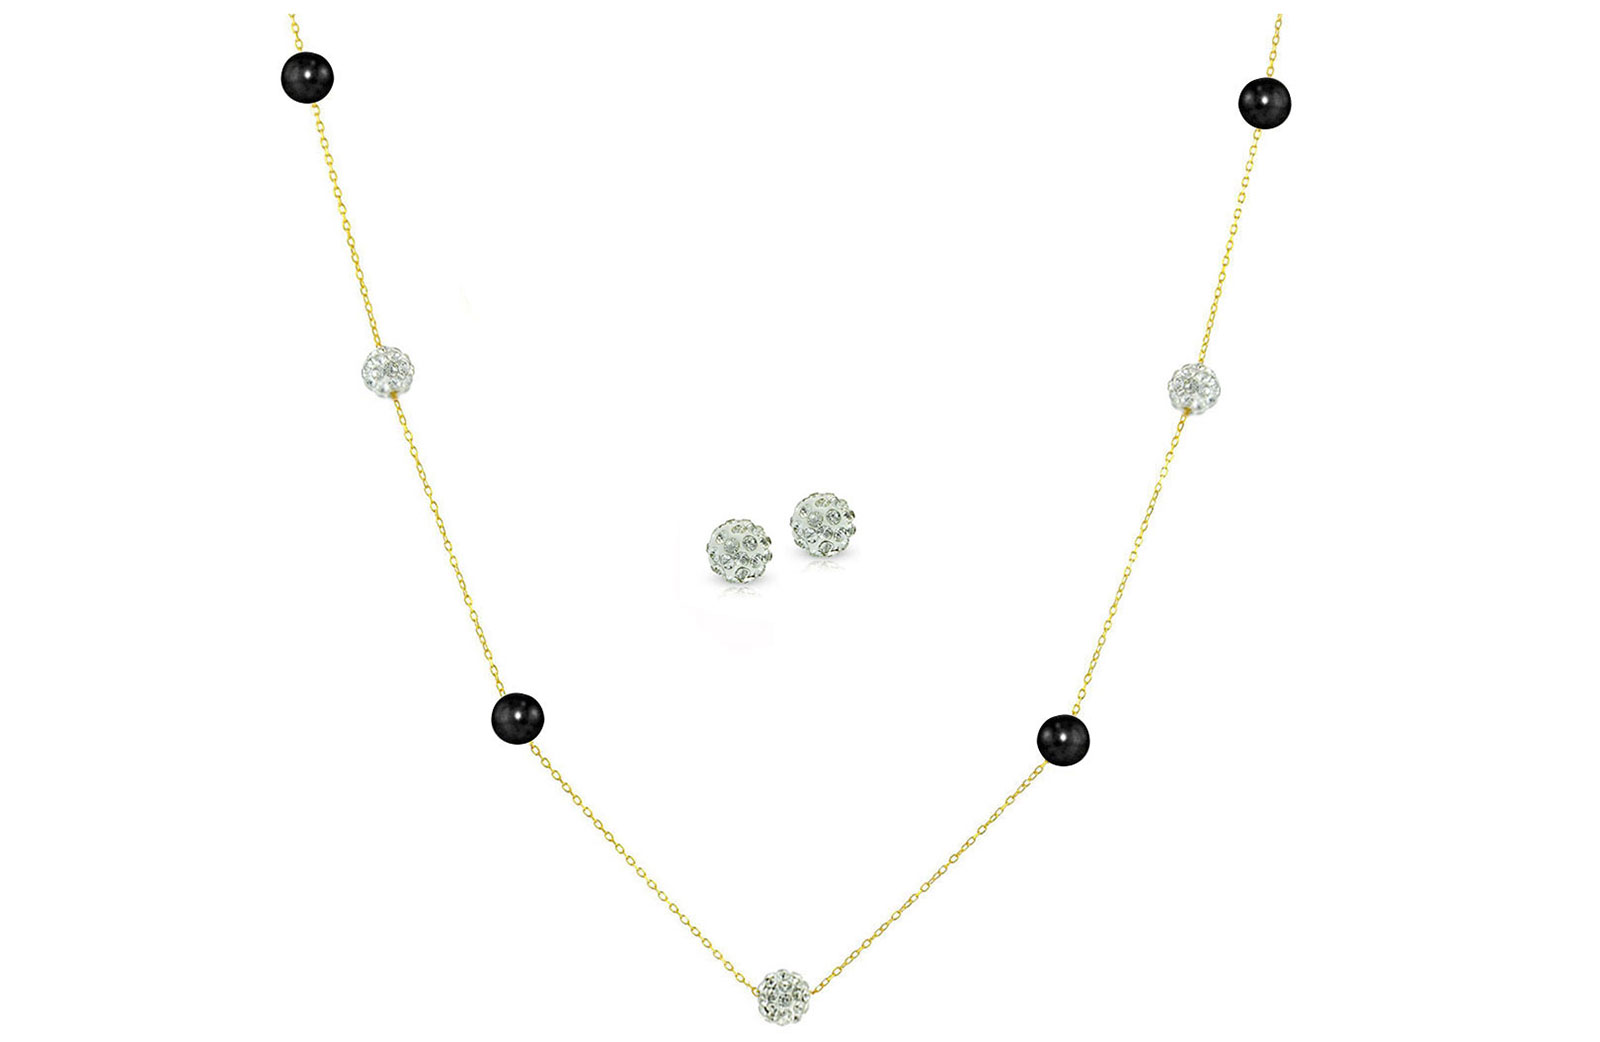 Vera Perla 18K Solid Gold Gradual Built-in 5-6mm Crystal Ball and Black Pearls Jewelry Set - 2 pcs.